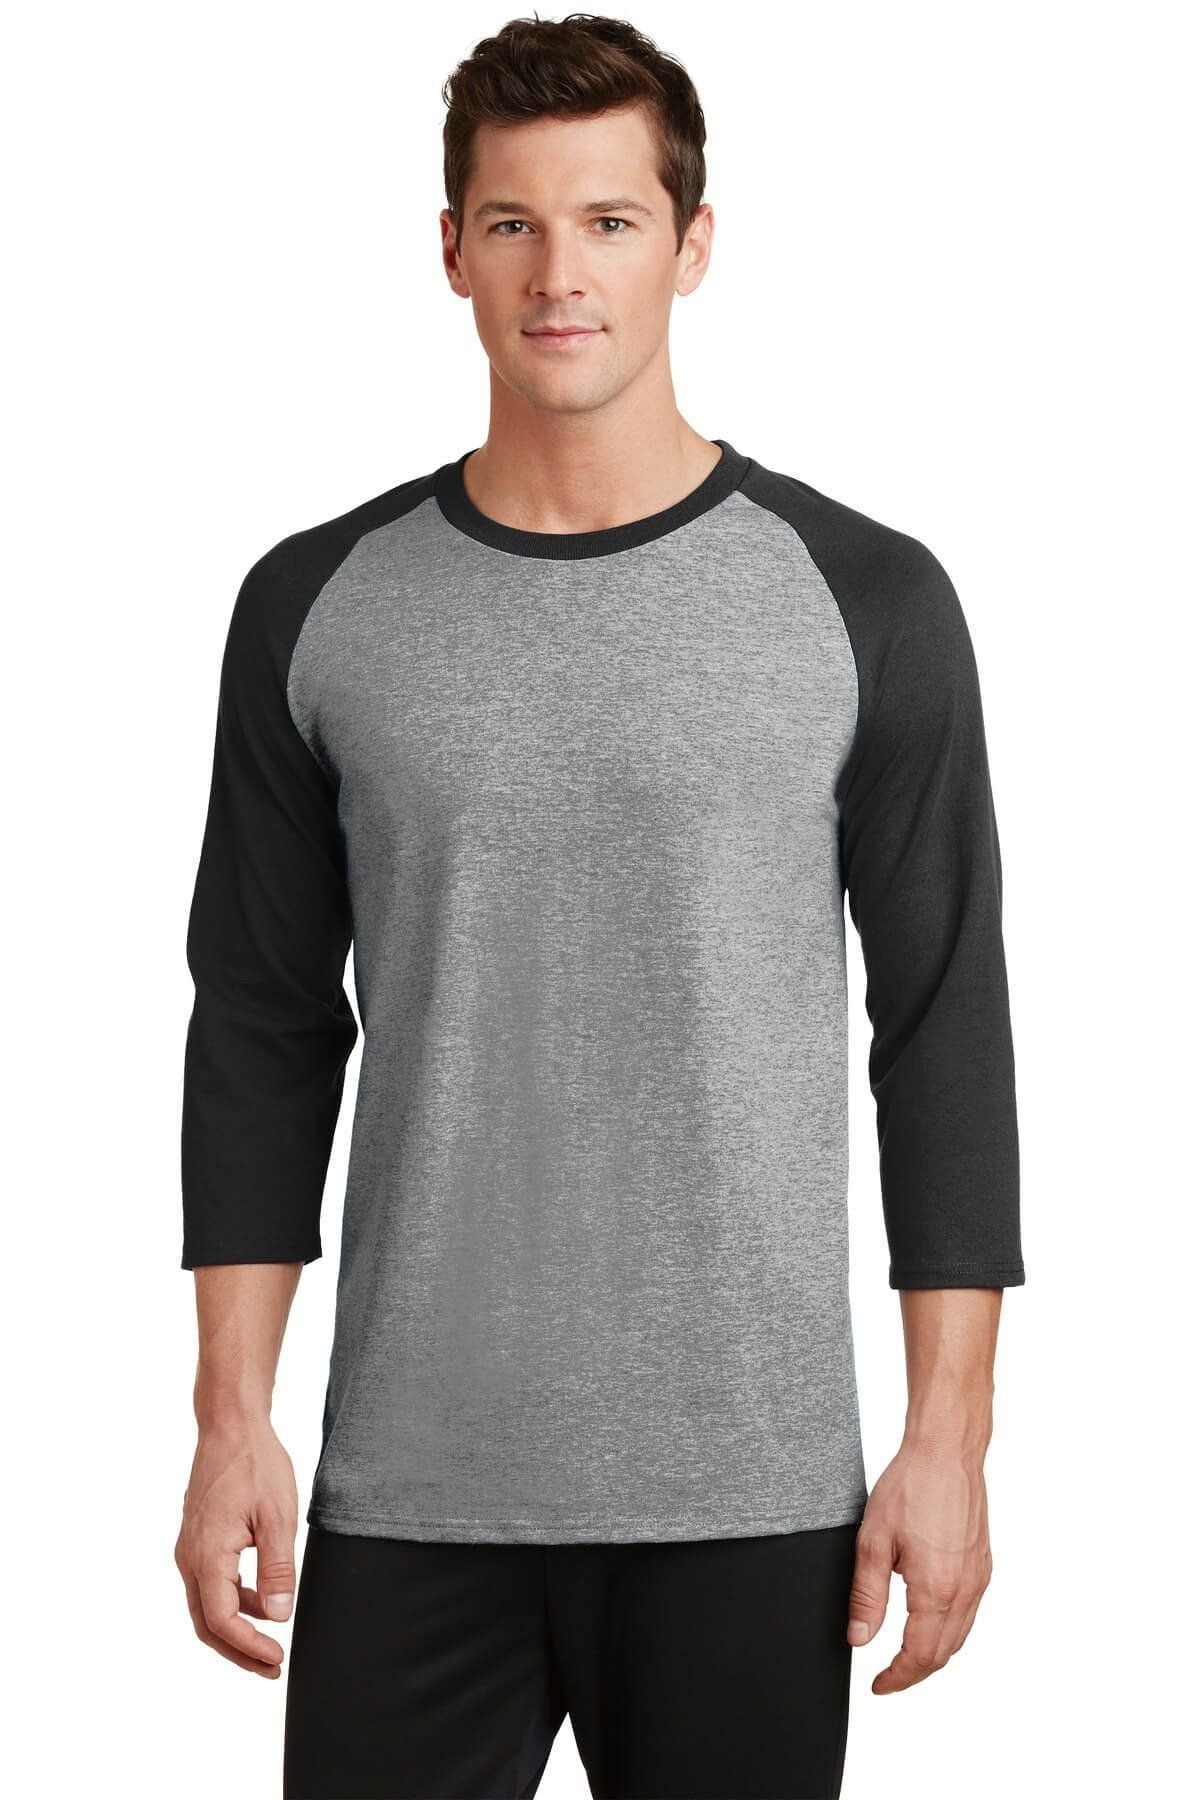 71455ec62fc8 Long Sleeve Shirts That Keep You Cool In The Summer